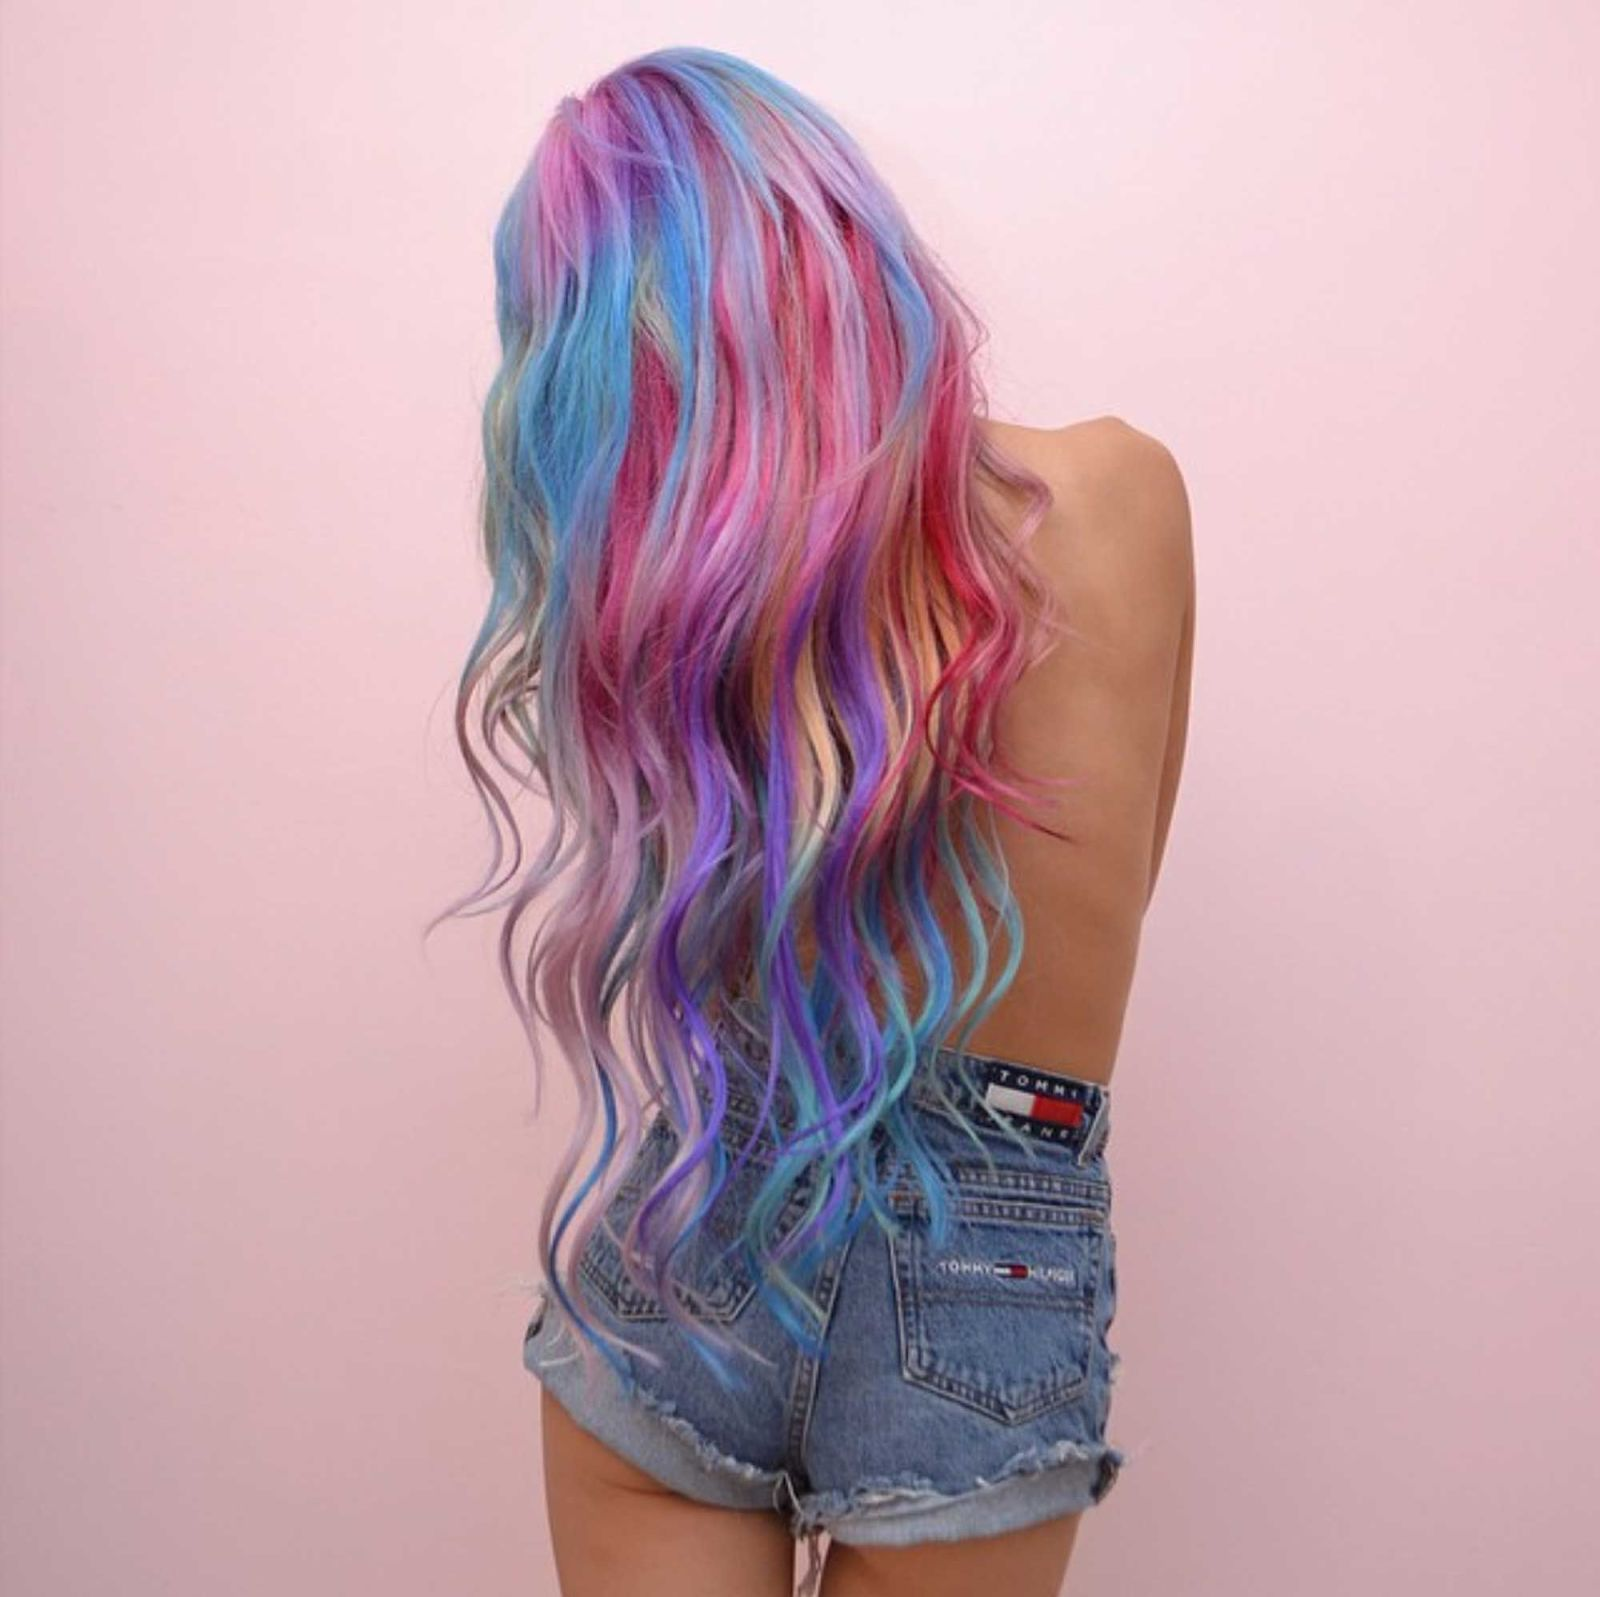 Art color hair - Whether You Like Crazy Colored Hair Or Not This Is Amazing